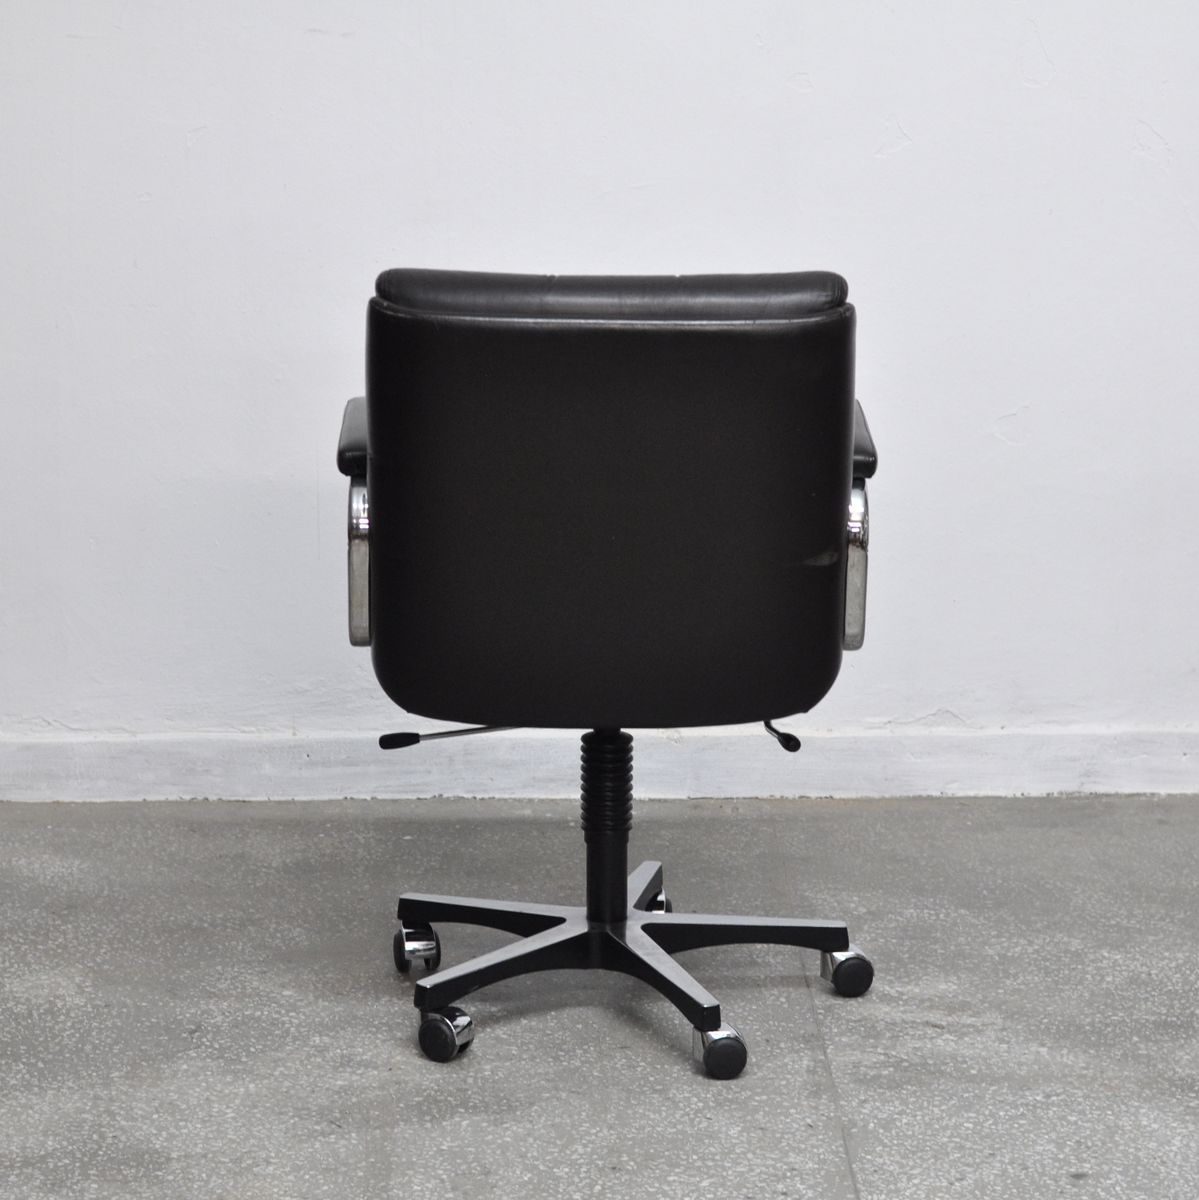 norwegian vintage office chair. Vintage Norwegian Office Chair From Ring Mekanikk 9. Price: $2,351.00 Regular $2,609.00 R